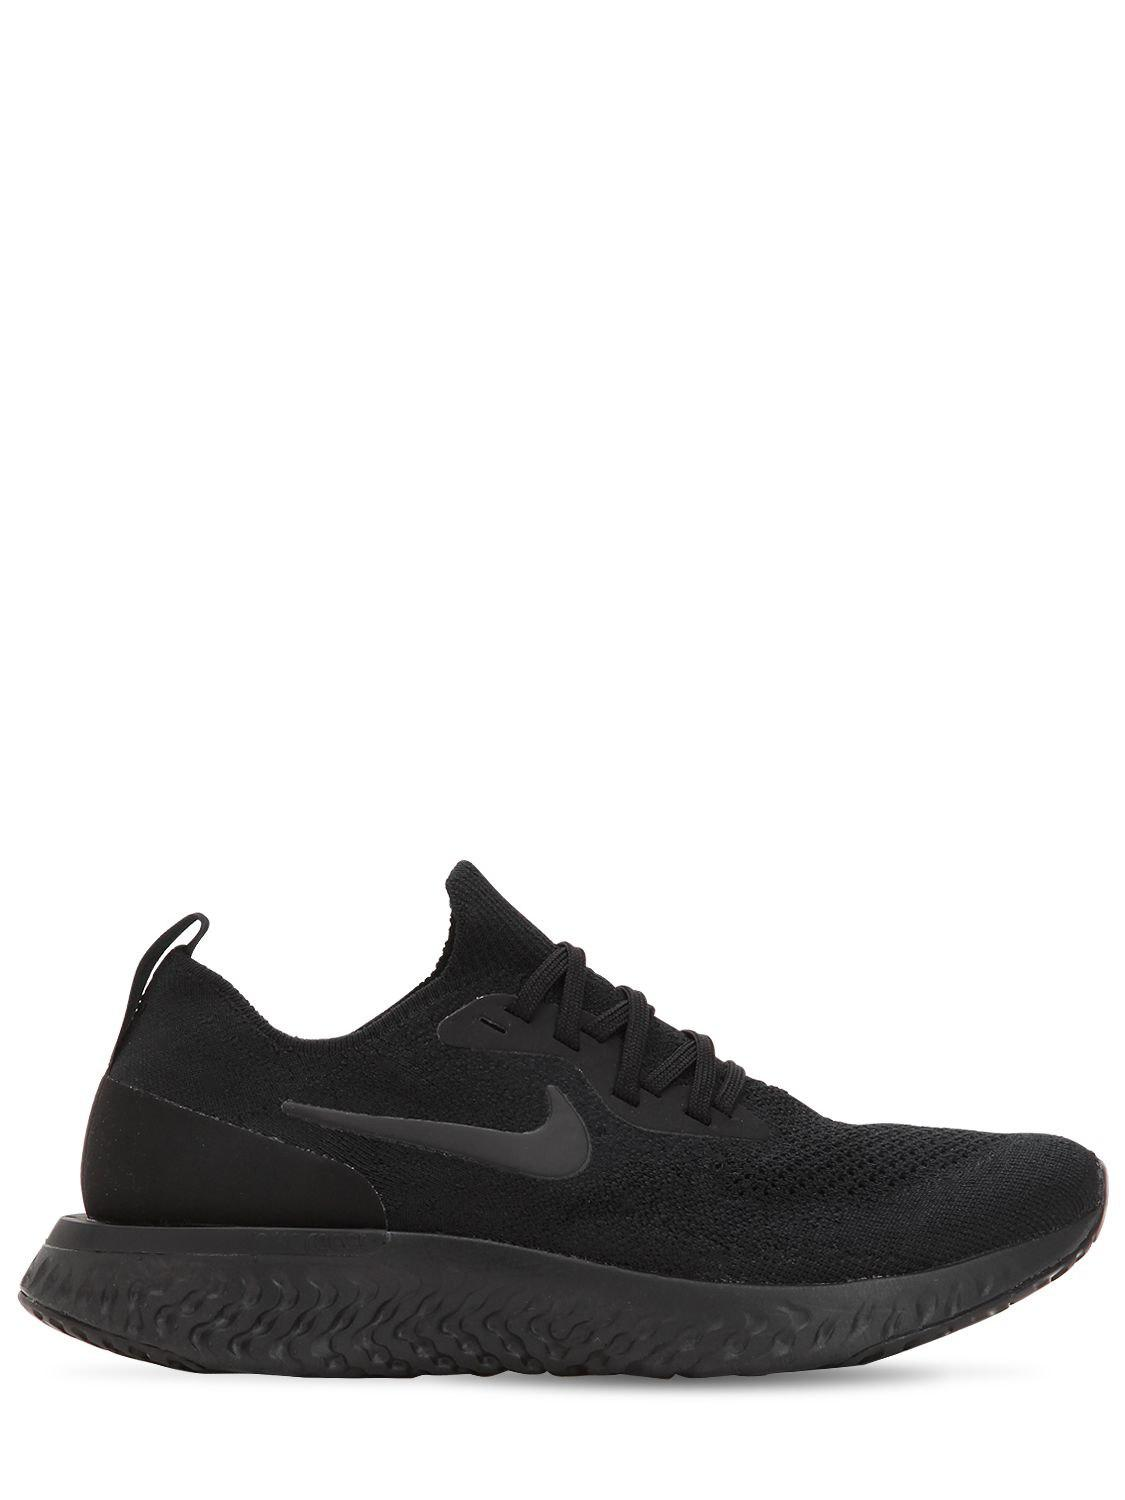 36f1a6790036 Nike Epic React Flyknit Sneakers in Black - Save 12% - Lyst